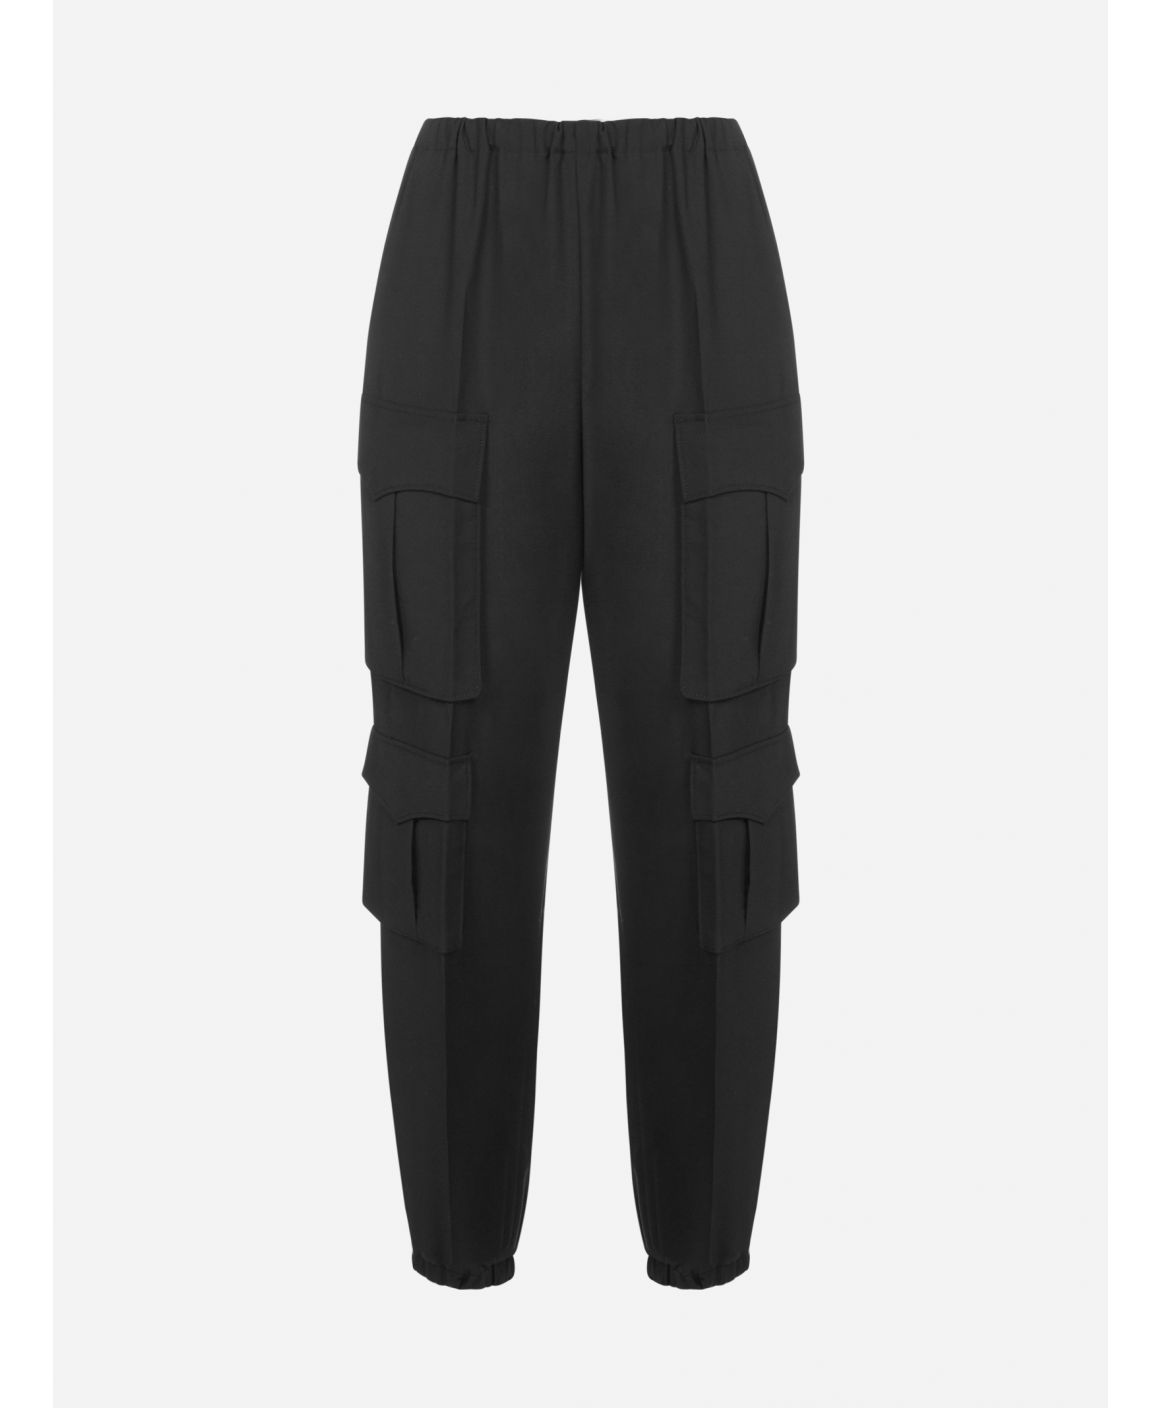 Virgin wool cargo pants